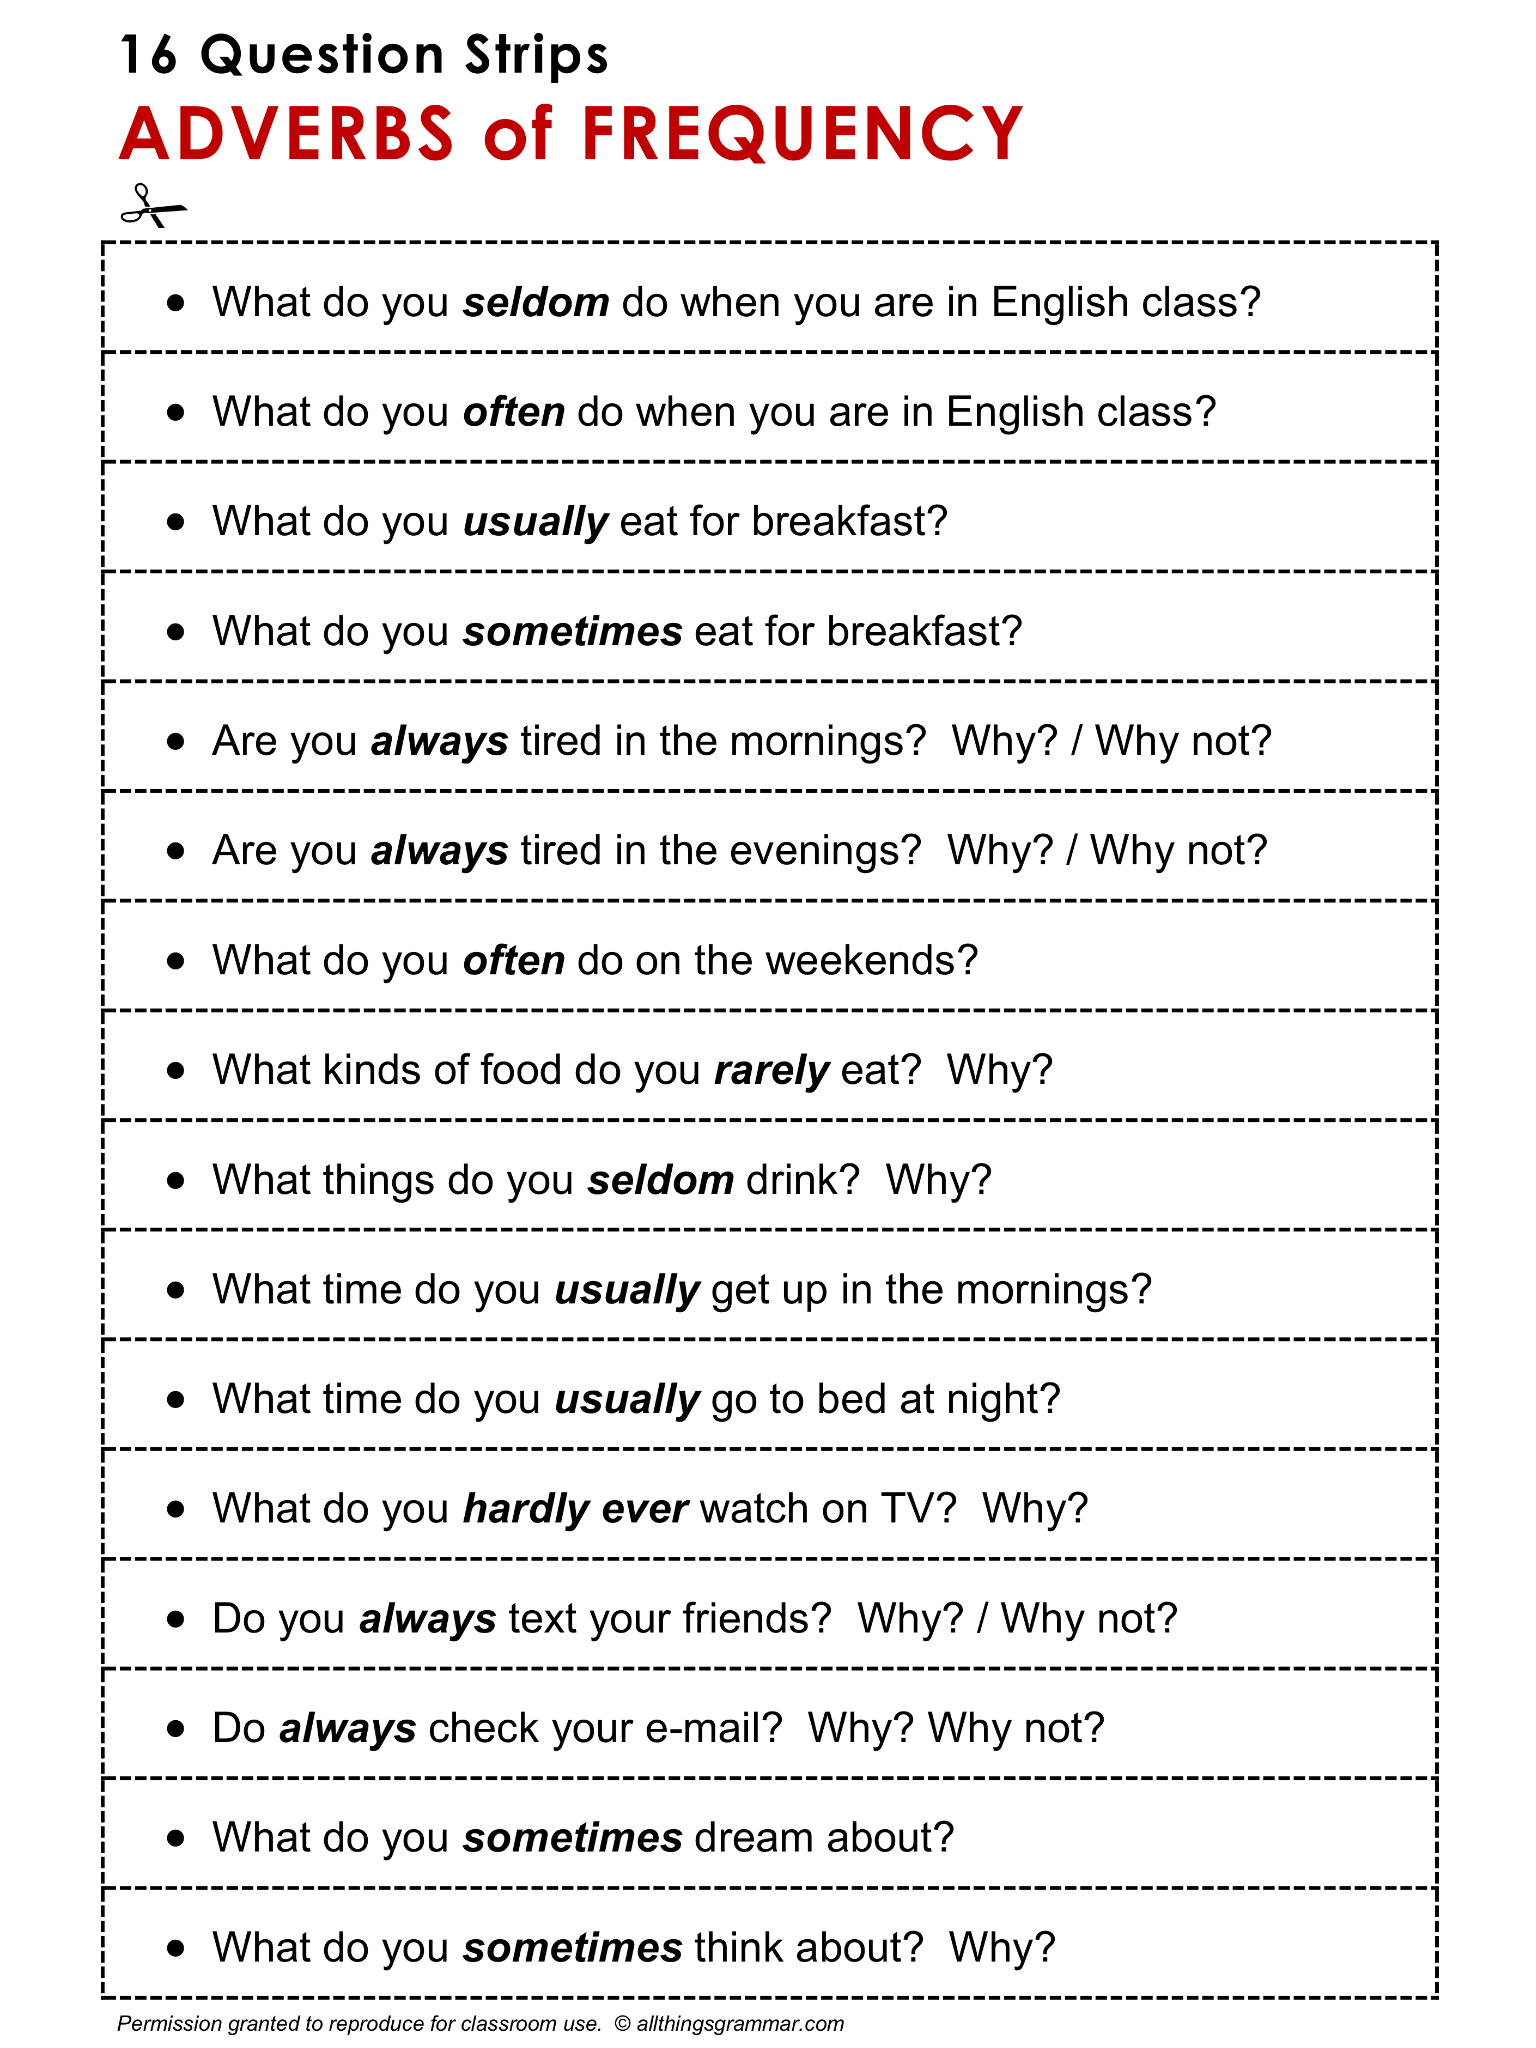 English Grammar Discussion Practice Adverbs Of Frequency